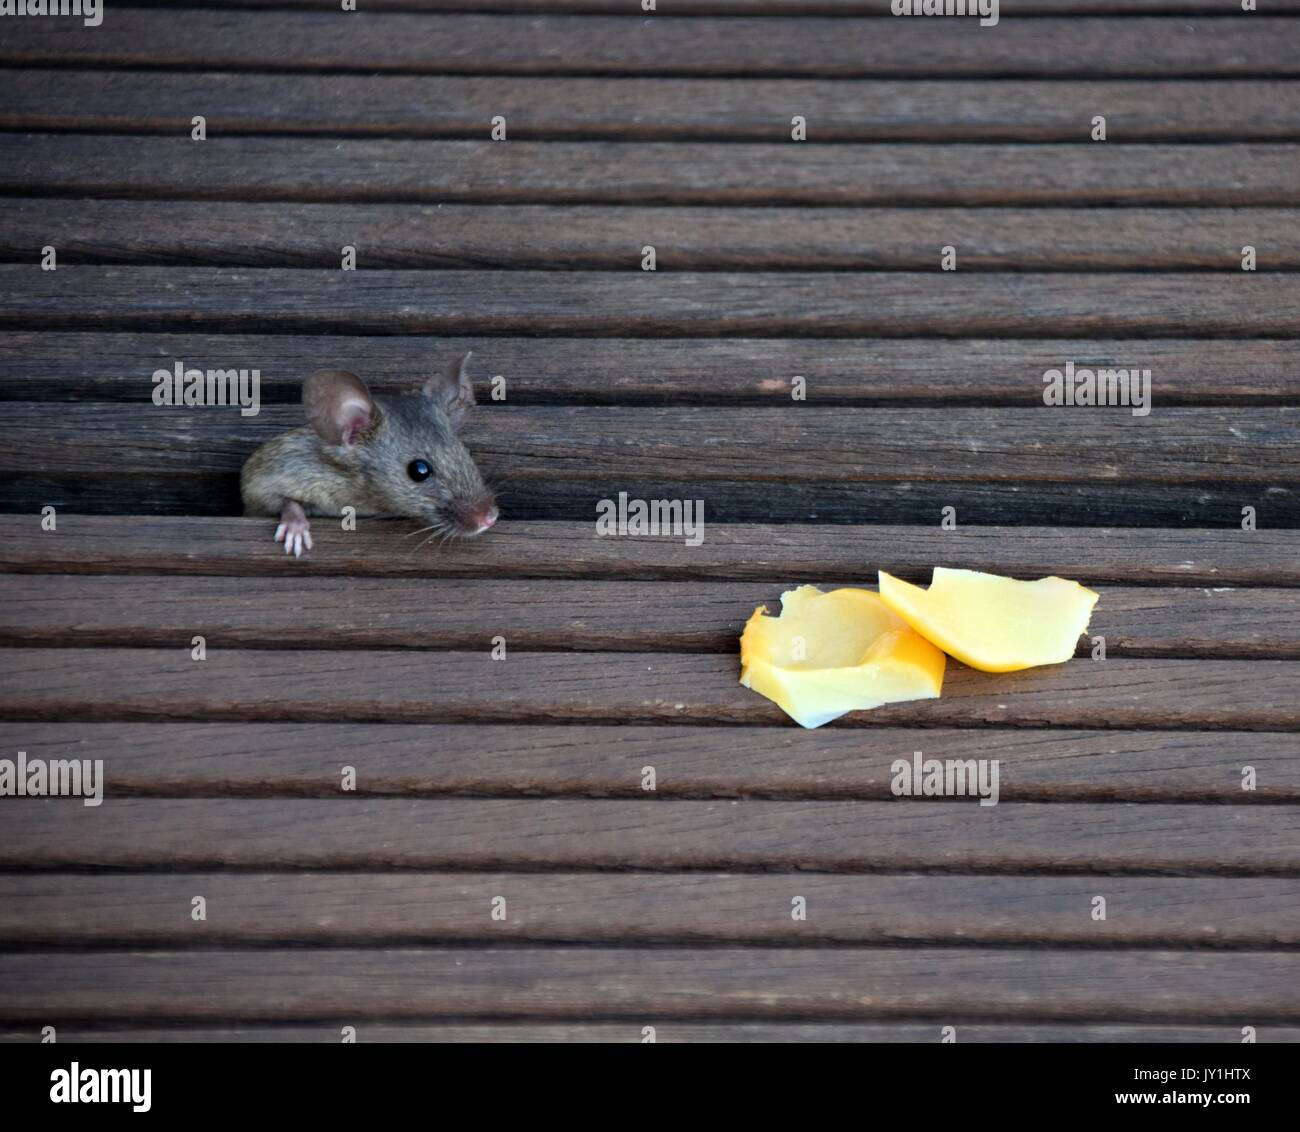 a hungry and curious house mouse with pieces of cheese, mus musculus - Stock Image